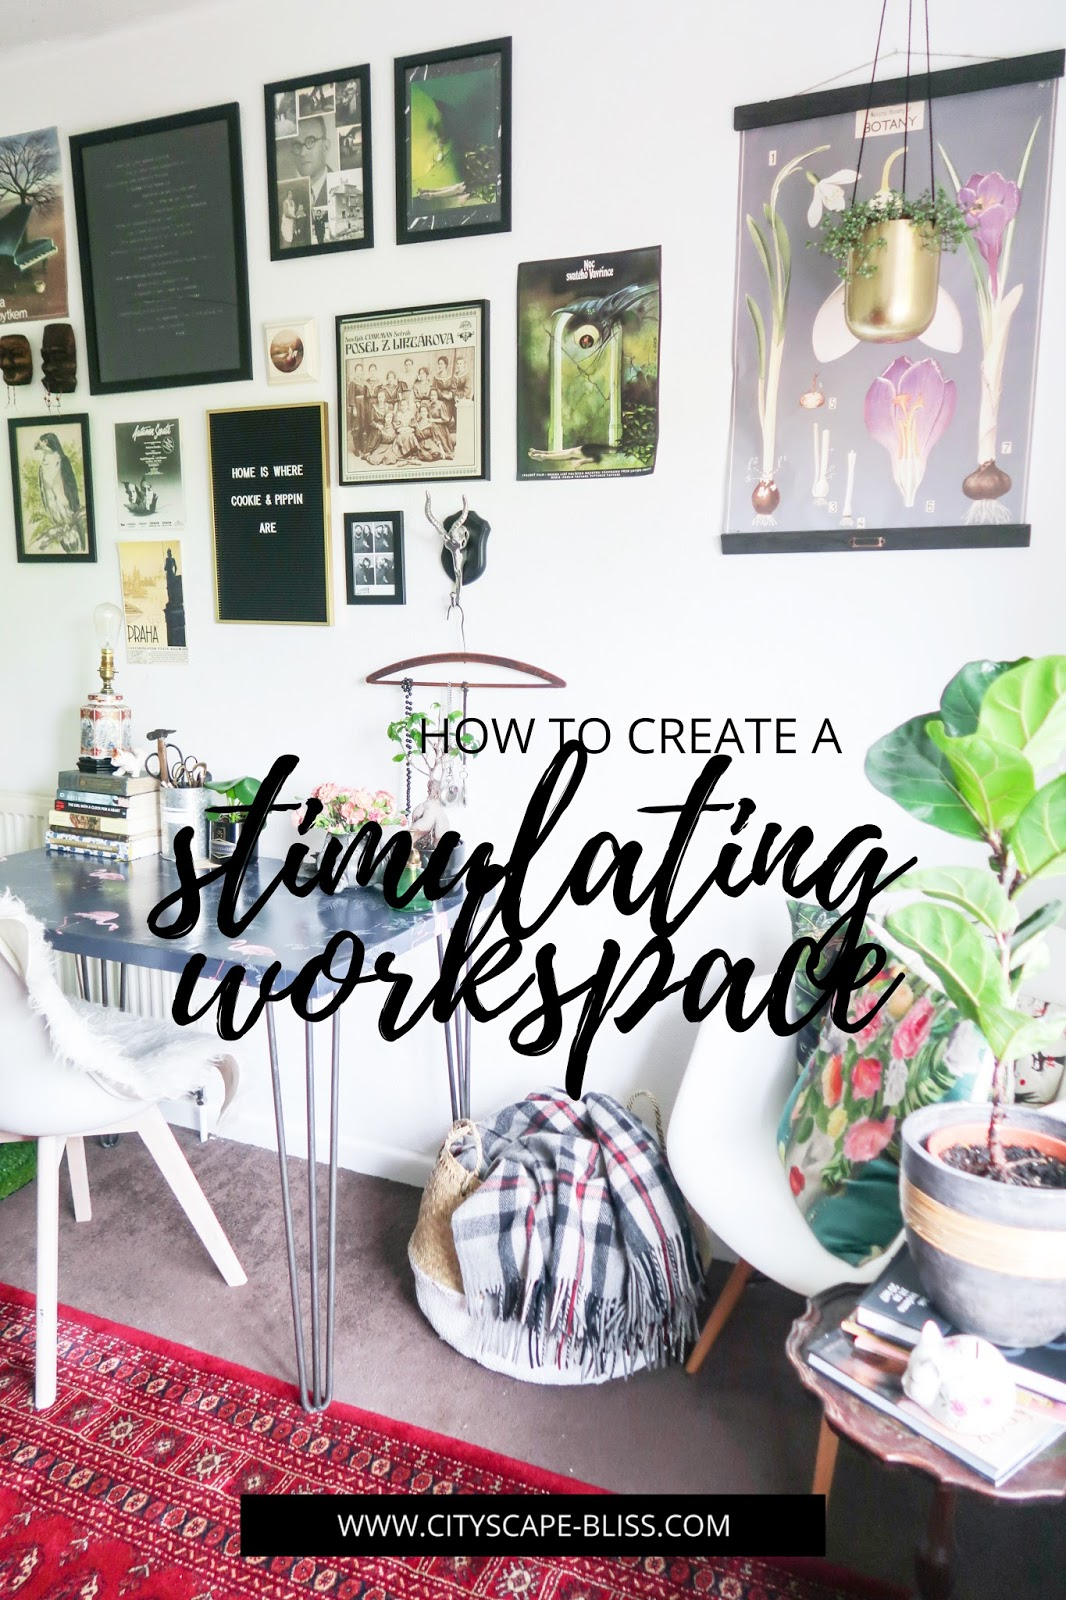 How I've created a stimulating workspace